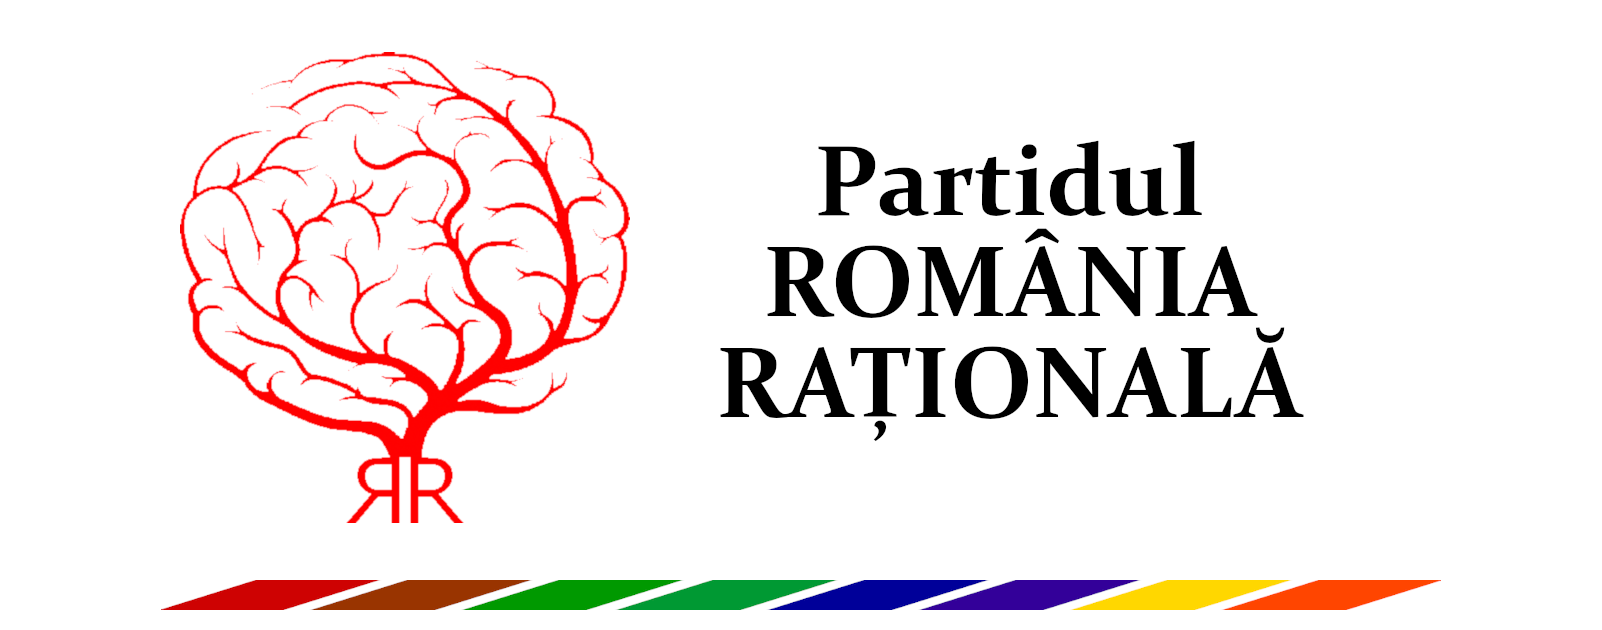 https://ziarul.romania-rationala.ro/control/articole/articole/partidul-romania-rationala-cover-1602x630_4.png